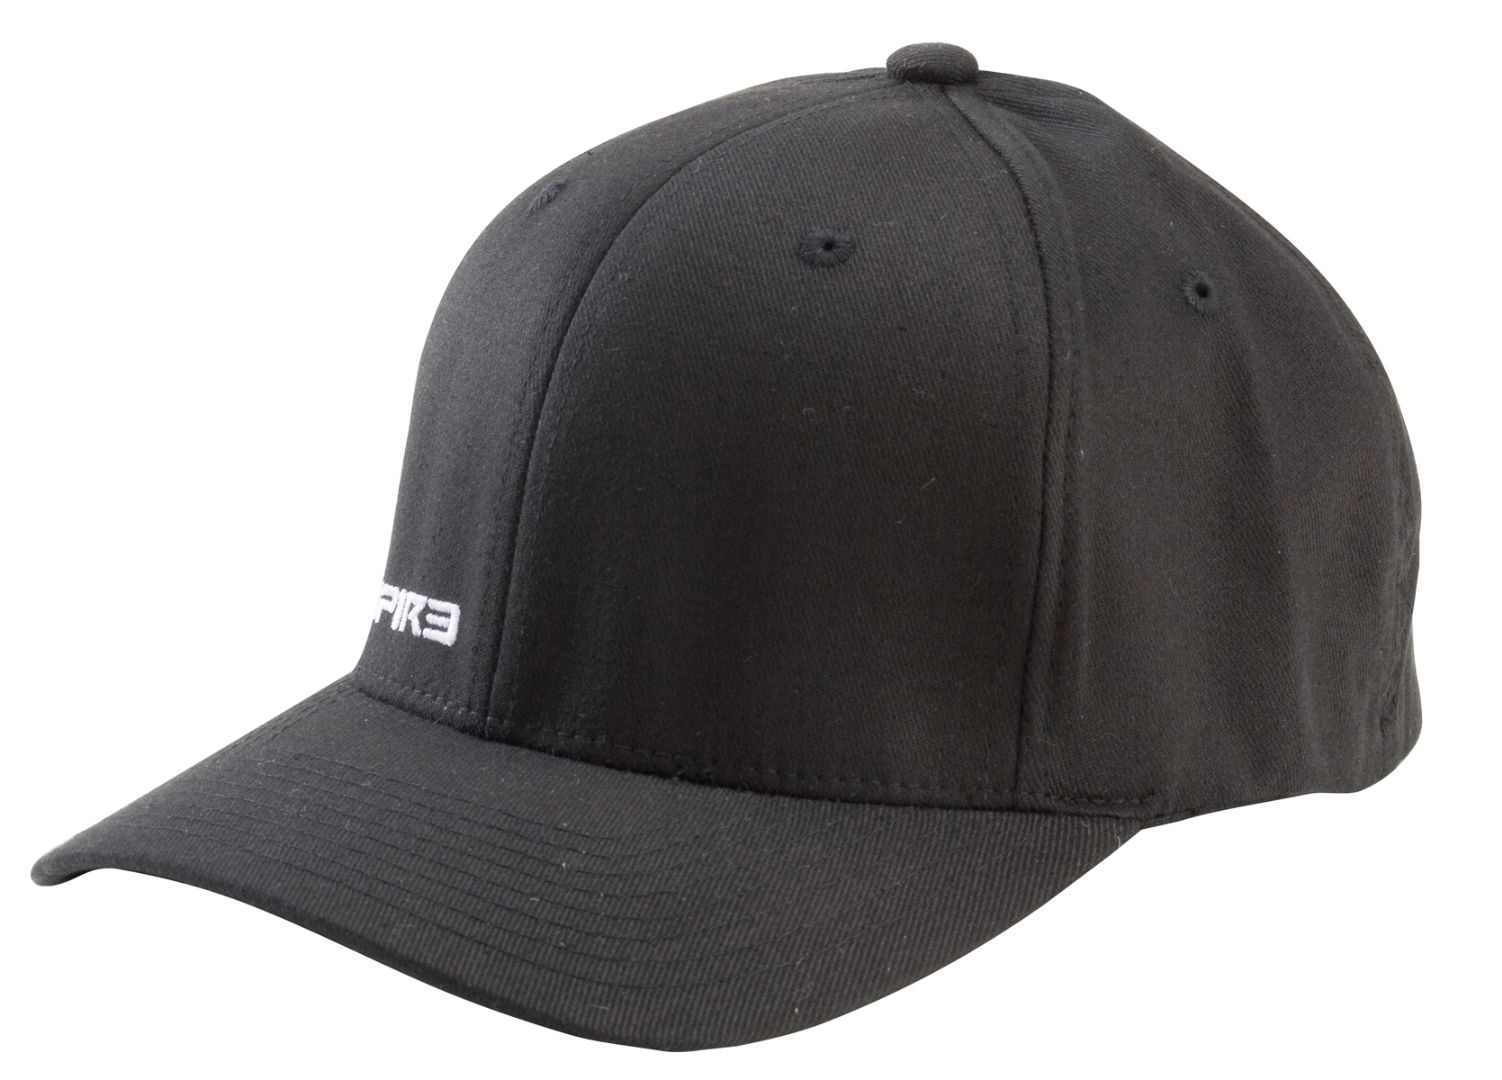 empire-flex-fit-hat-text-twill-black